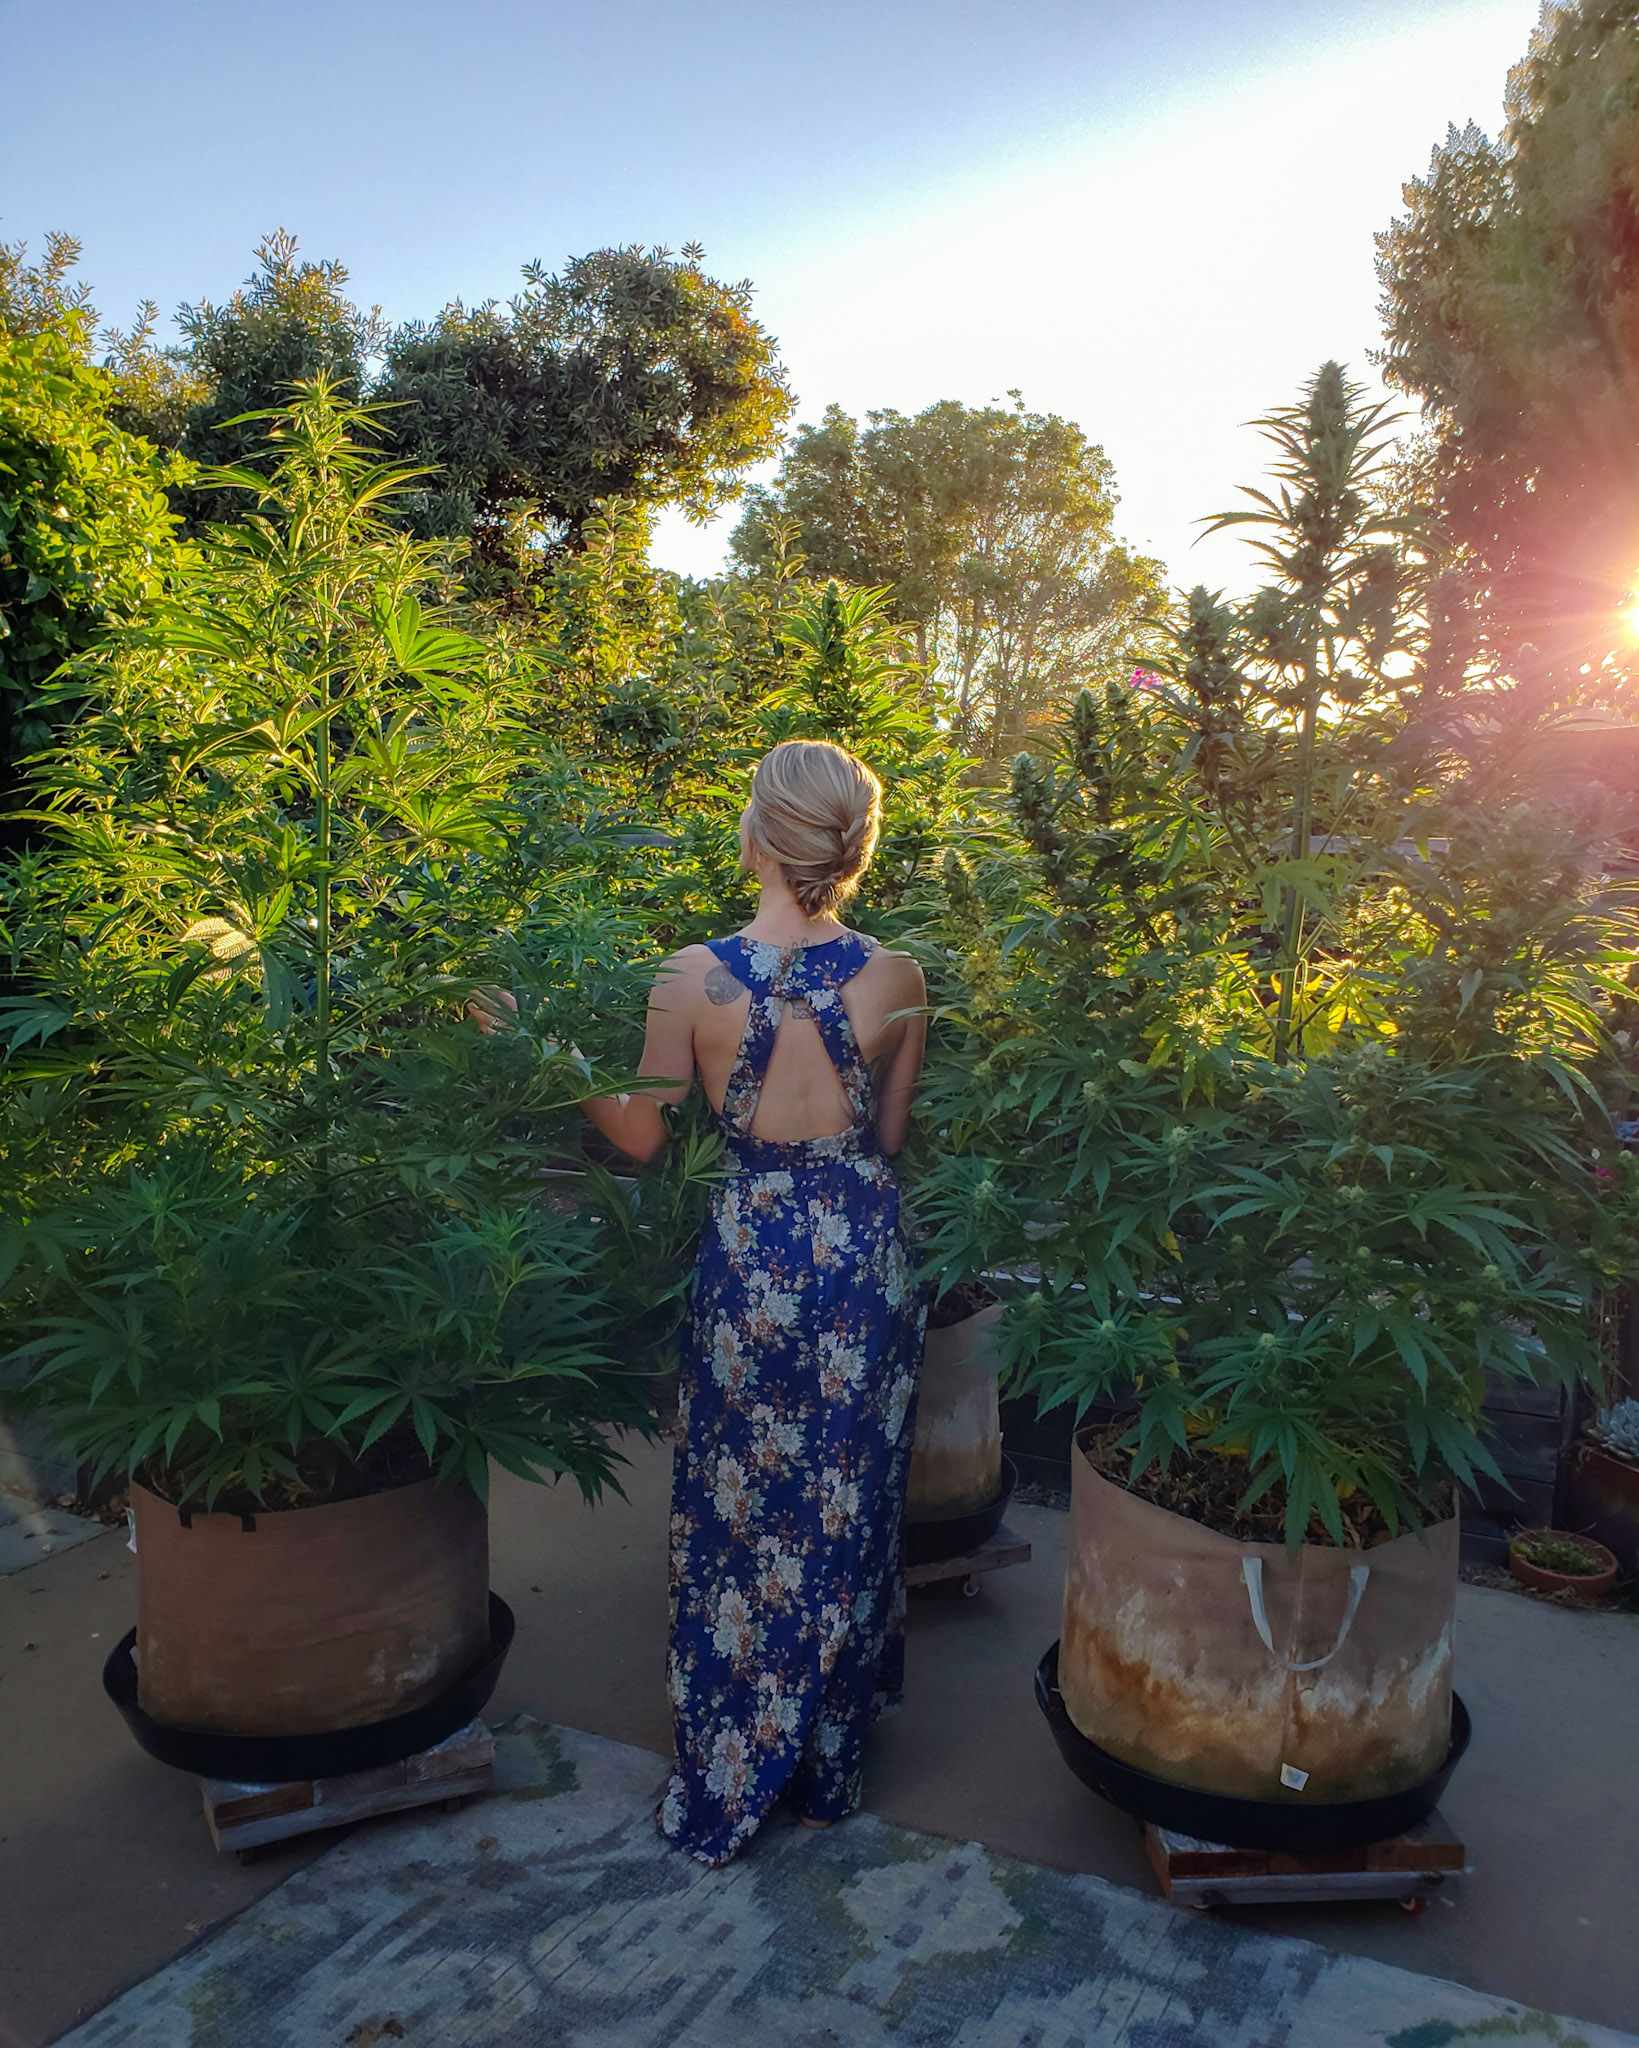 DeannaCat standing amongst mature cannabis plants in various stages of flower. The evening sun is shining in through trees casting a warm glow.mshe is wearing a blue dress with a floral/plant pattern.